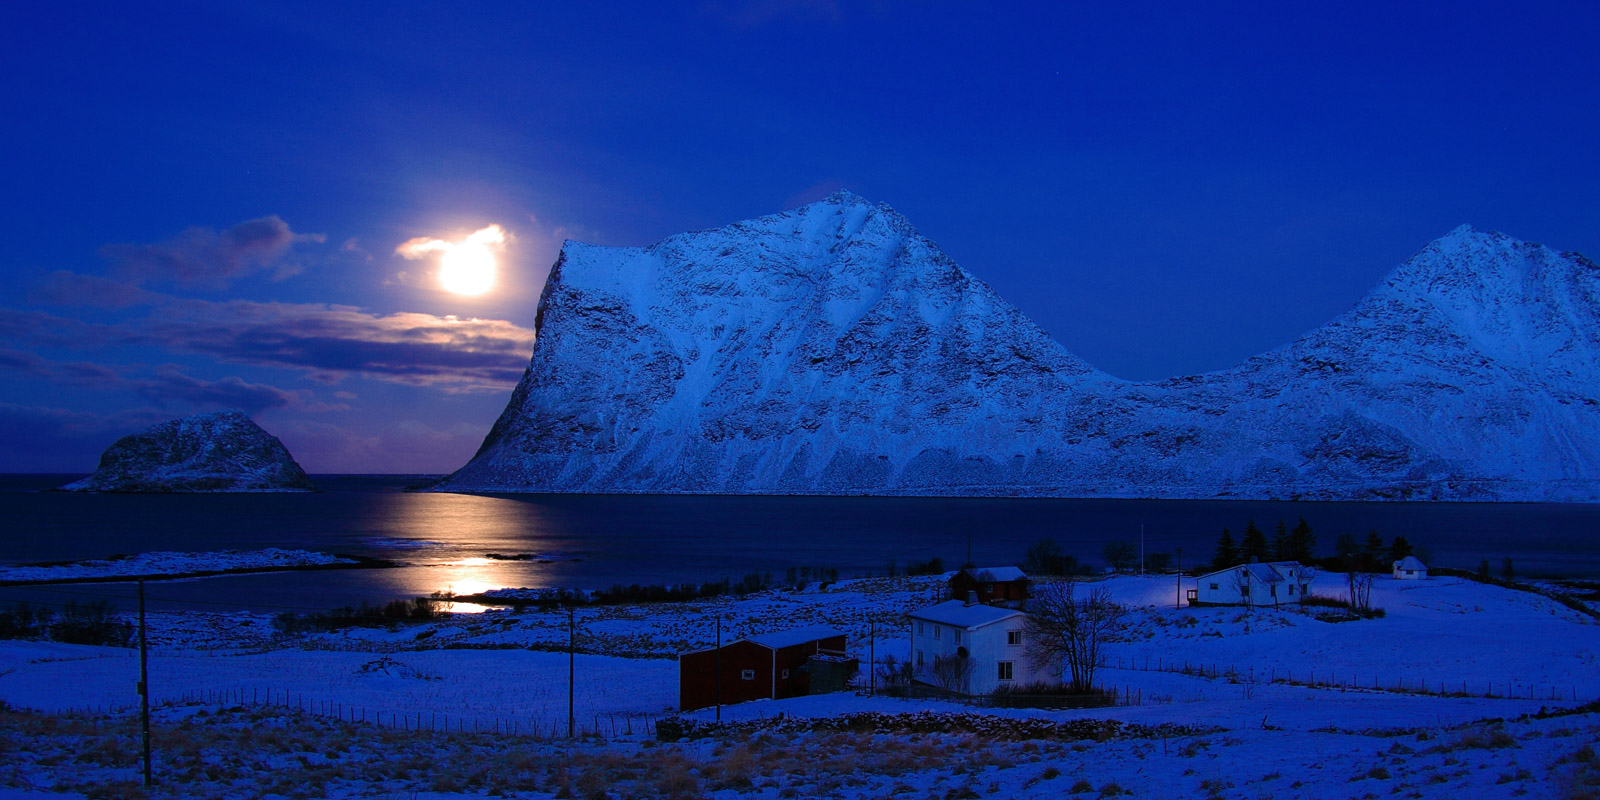 Moonlight replacing the sun in Lofoten © Tommy Kristiansen